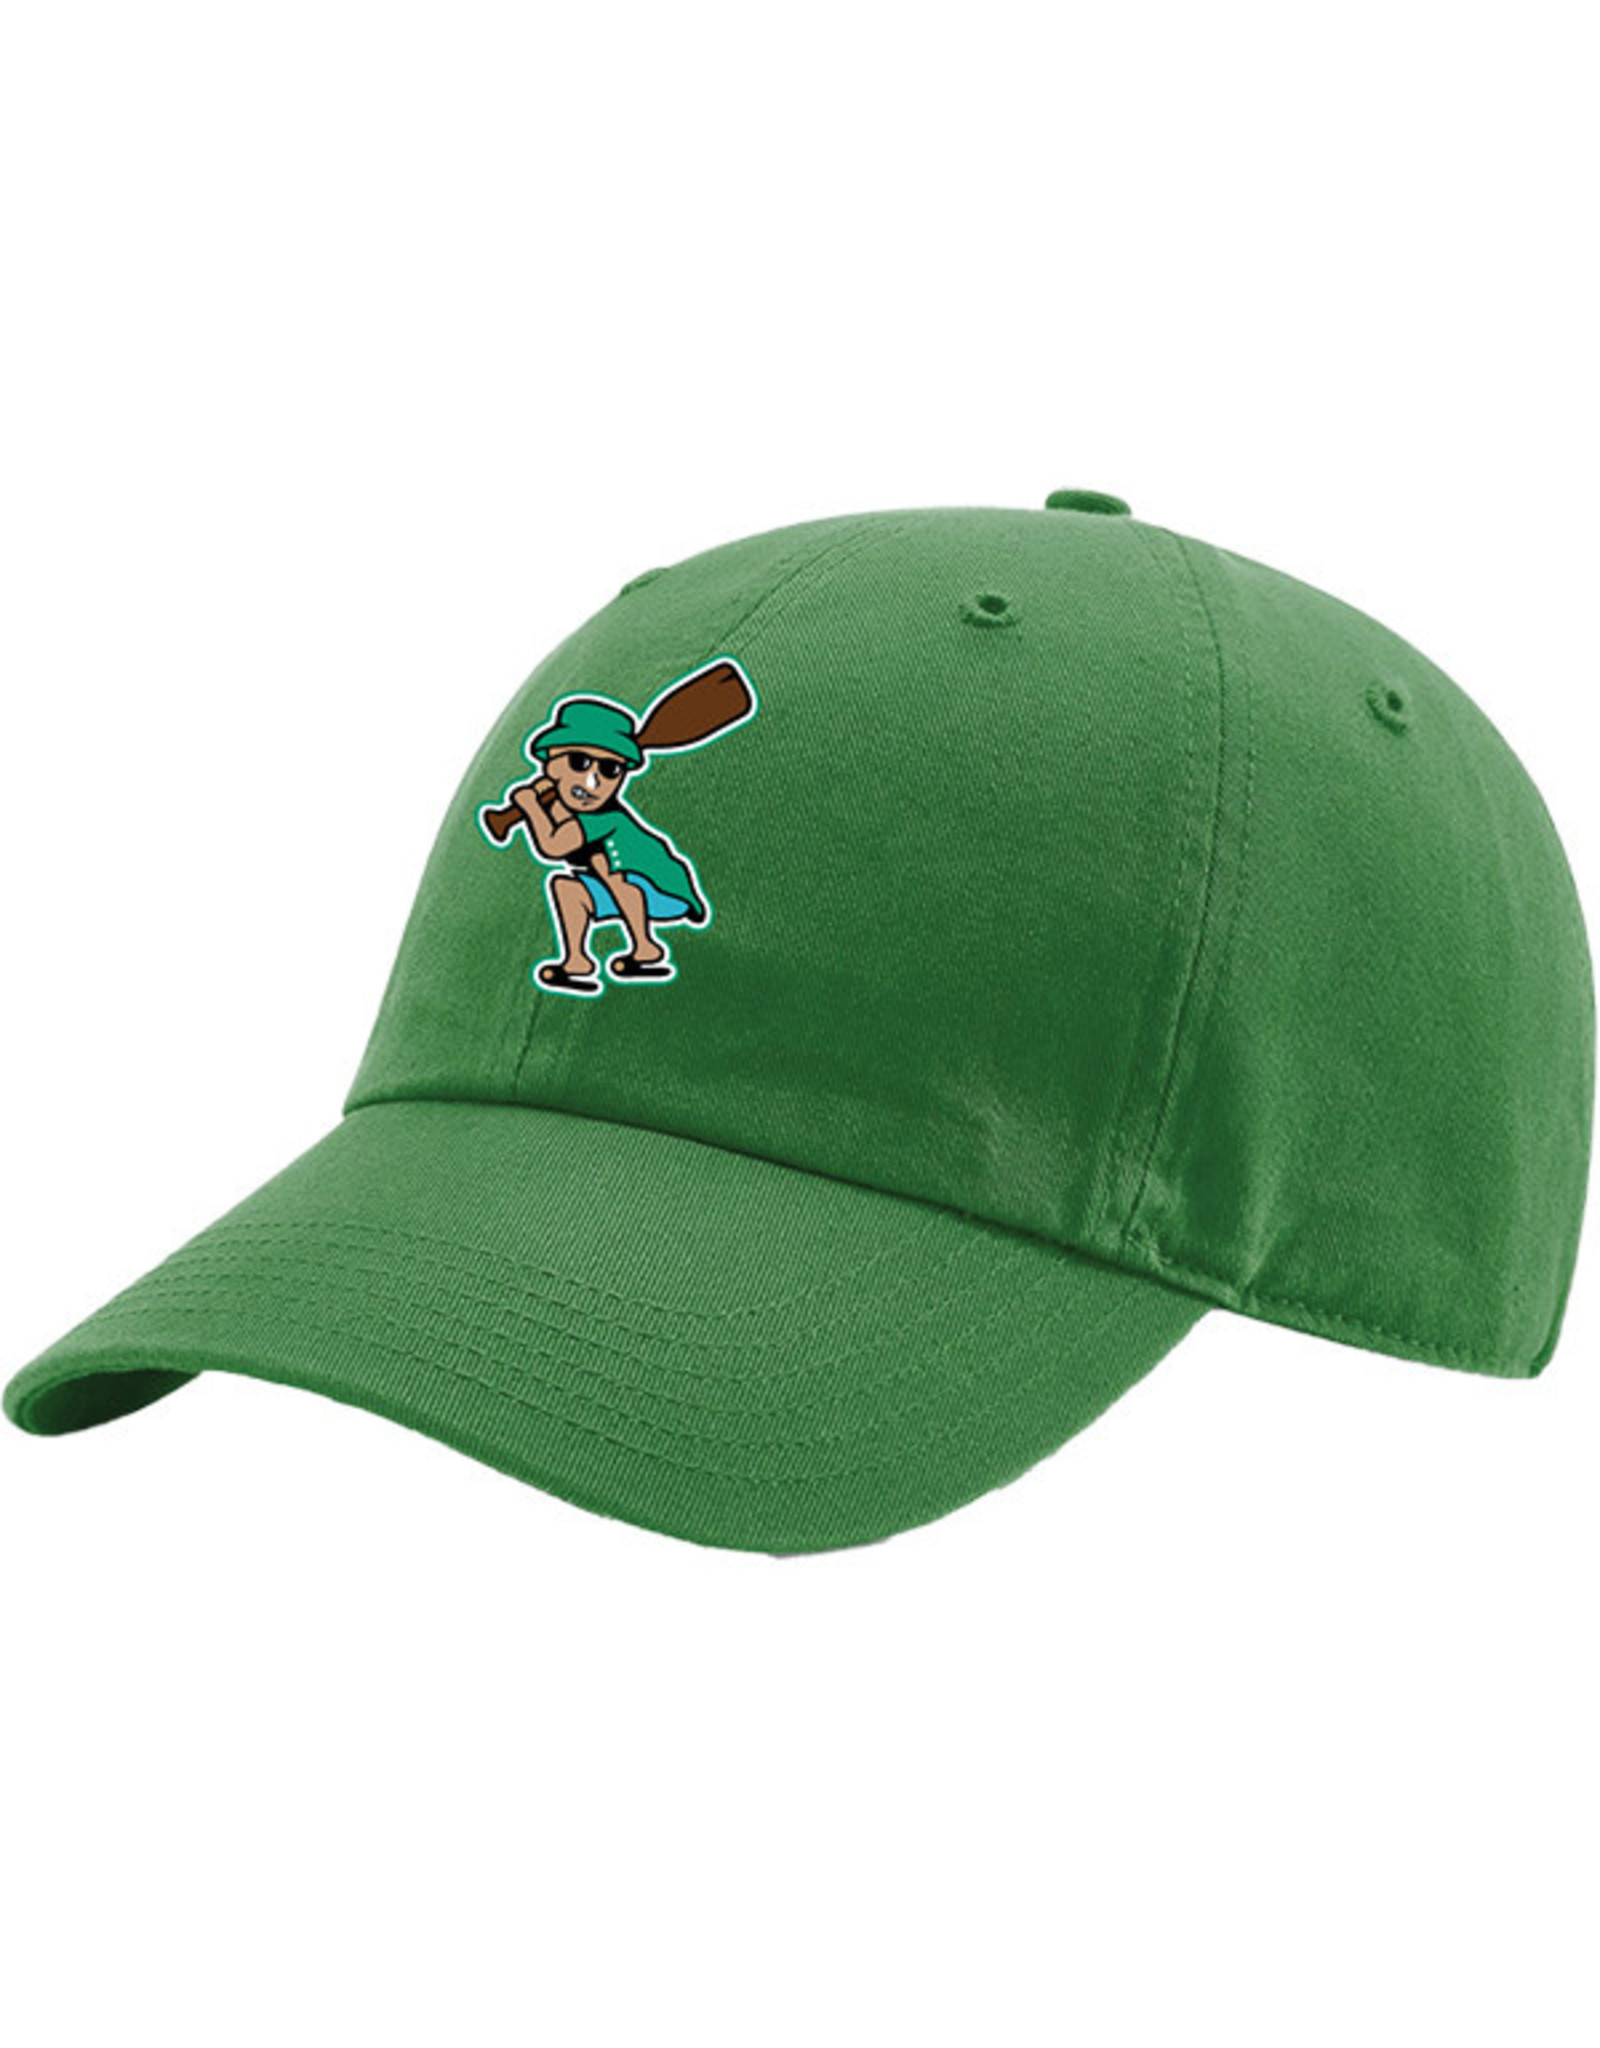 Richardson 1810 Resorters Youth Green Unstructured Cap